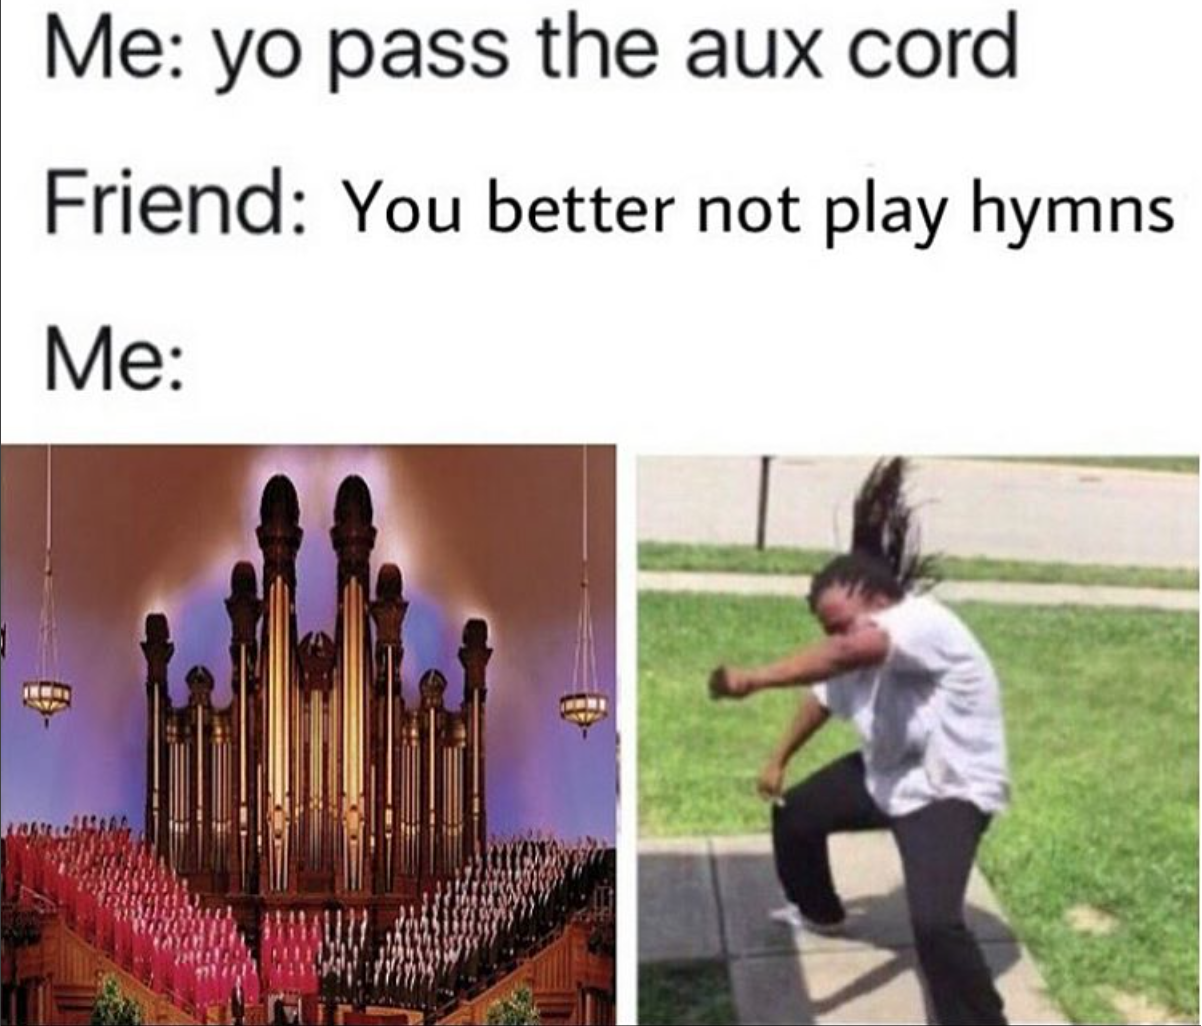 Pass the aux cord for hymns meme